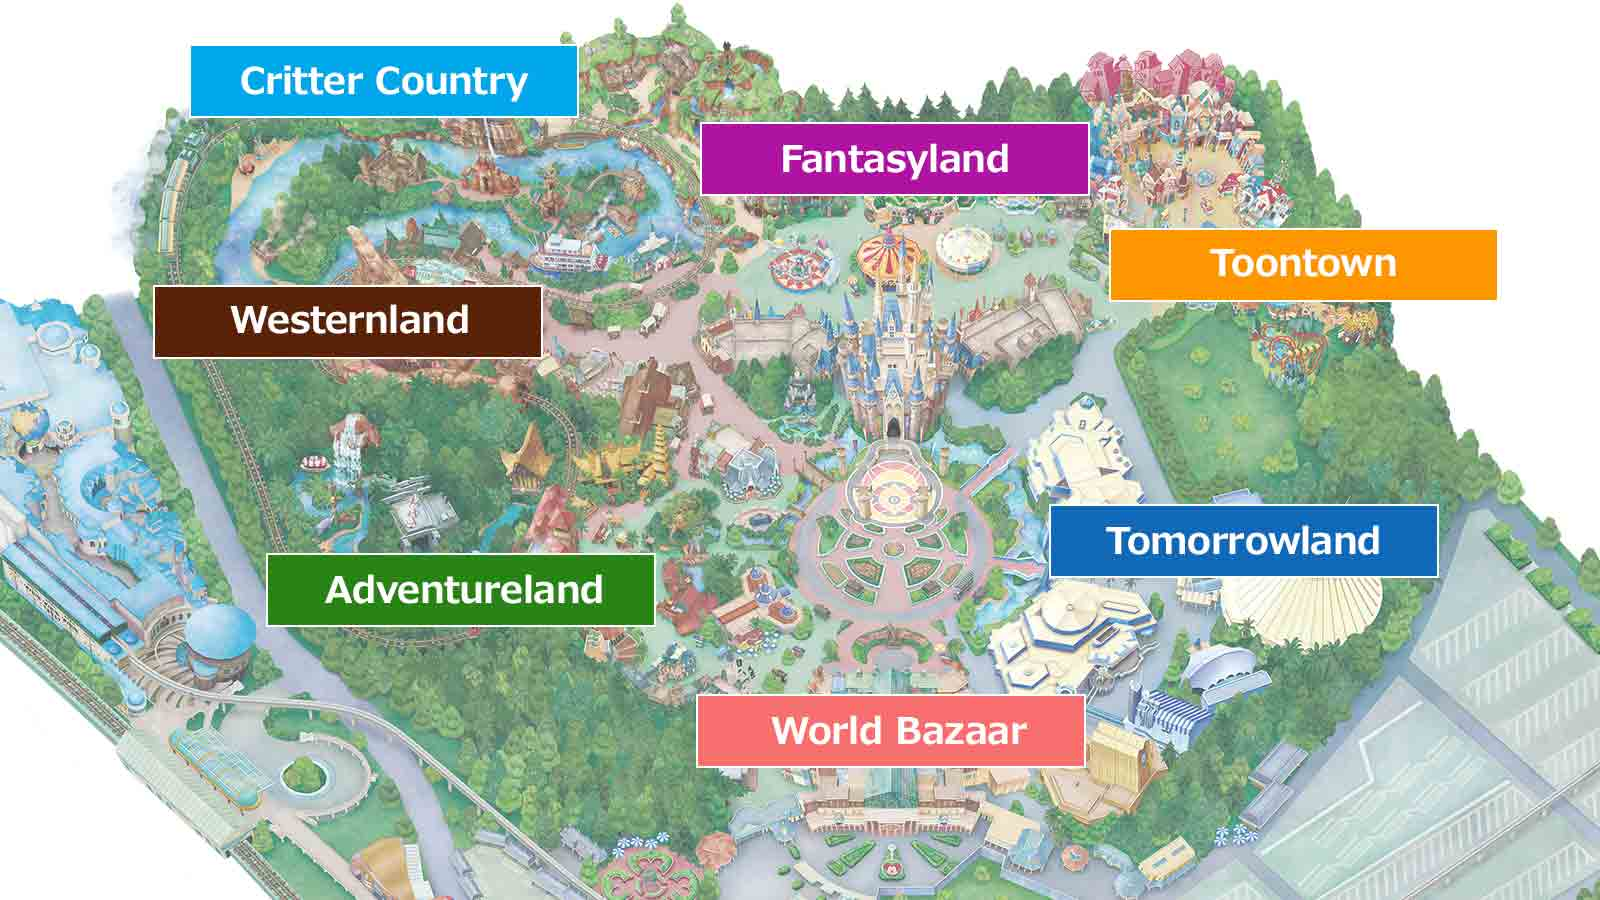 Official]Map|Tokyo Disneyland on disneyland minecraft download, disney world map download, disneyland california,